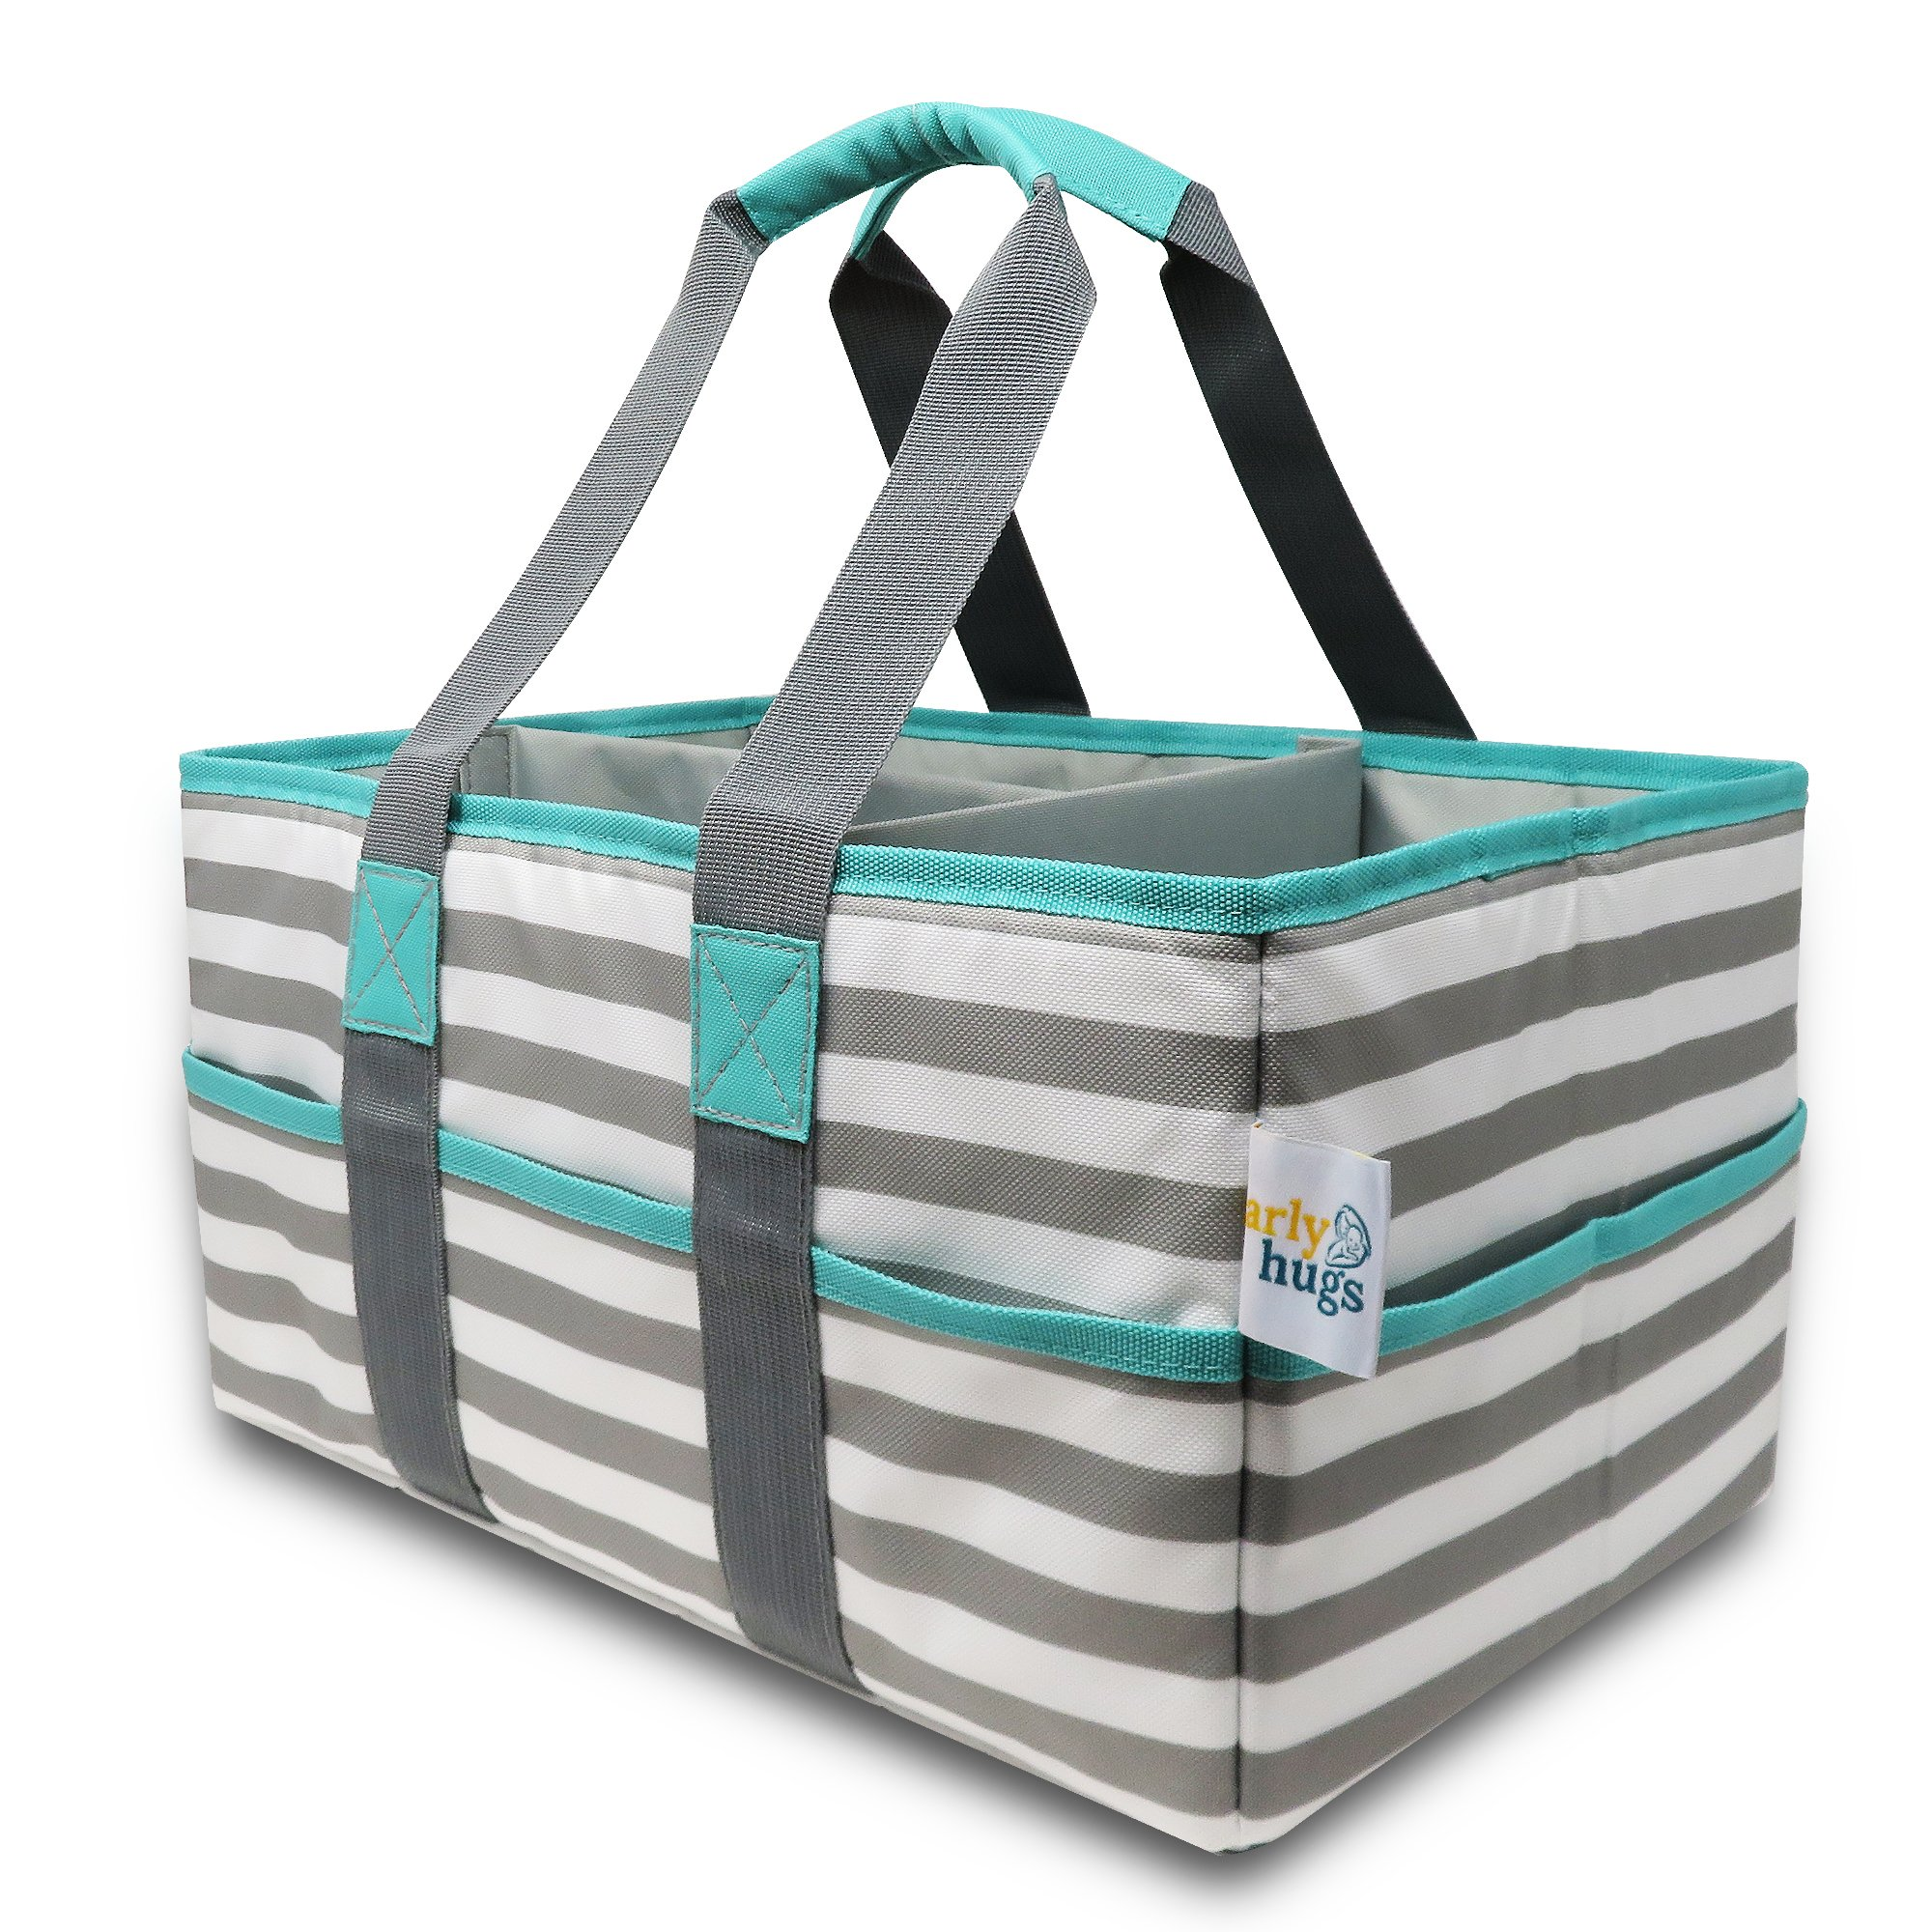 Diaper Caddy Organizer | Extra Large, Non-Toxic, Sturdy, Durable, 100% Polyester Diaper and Nursery Organizer, Diaper Storage Caddy, Baby Gift Basket, Toy Storage | Gray, White, Teal, Light Blue